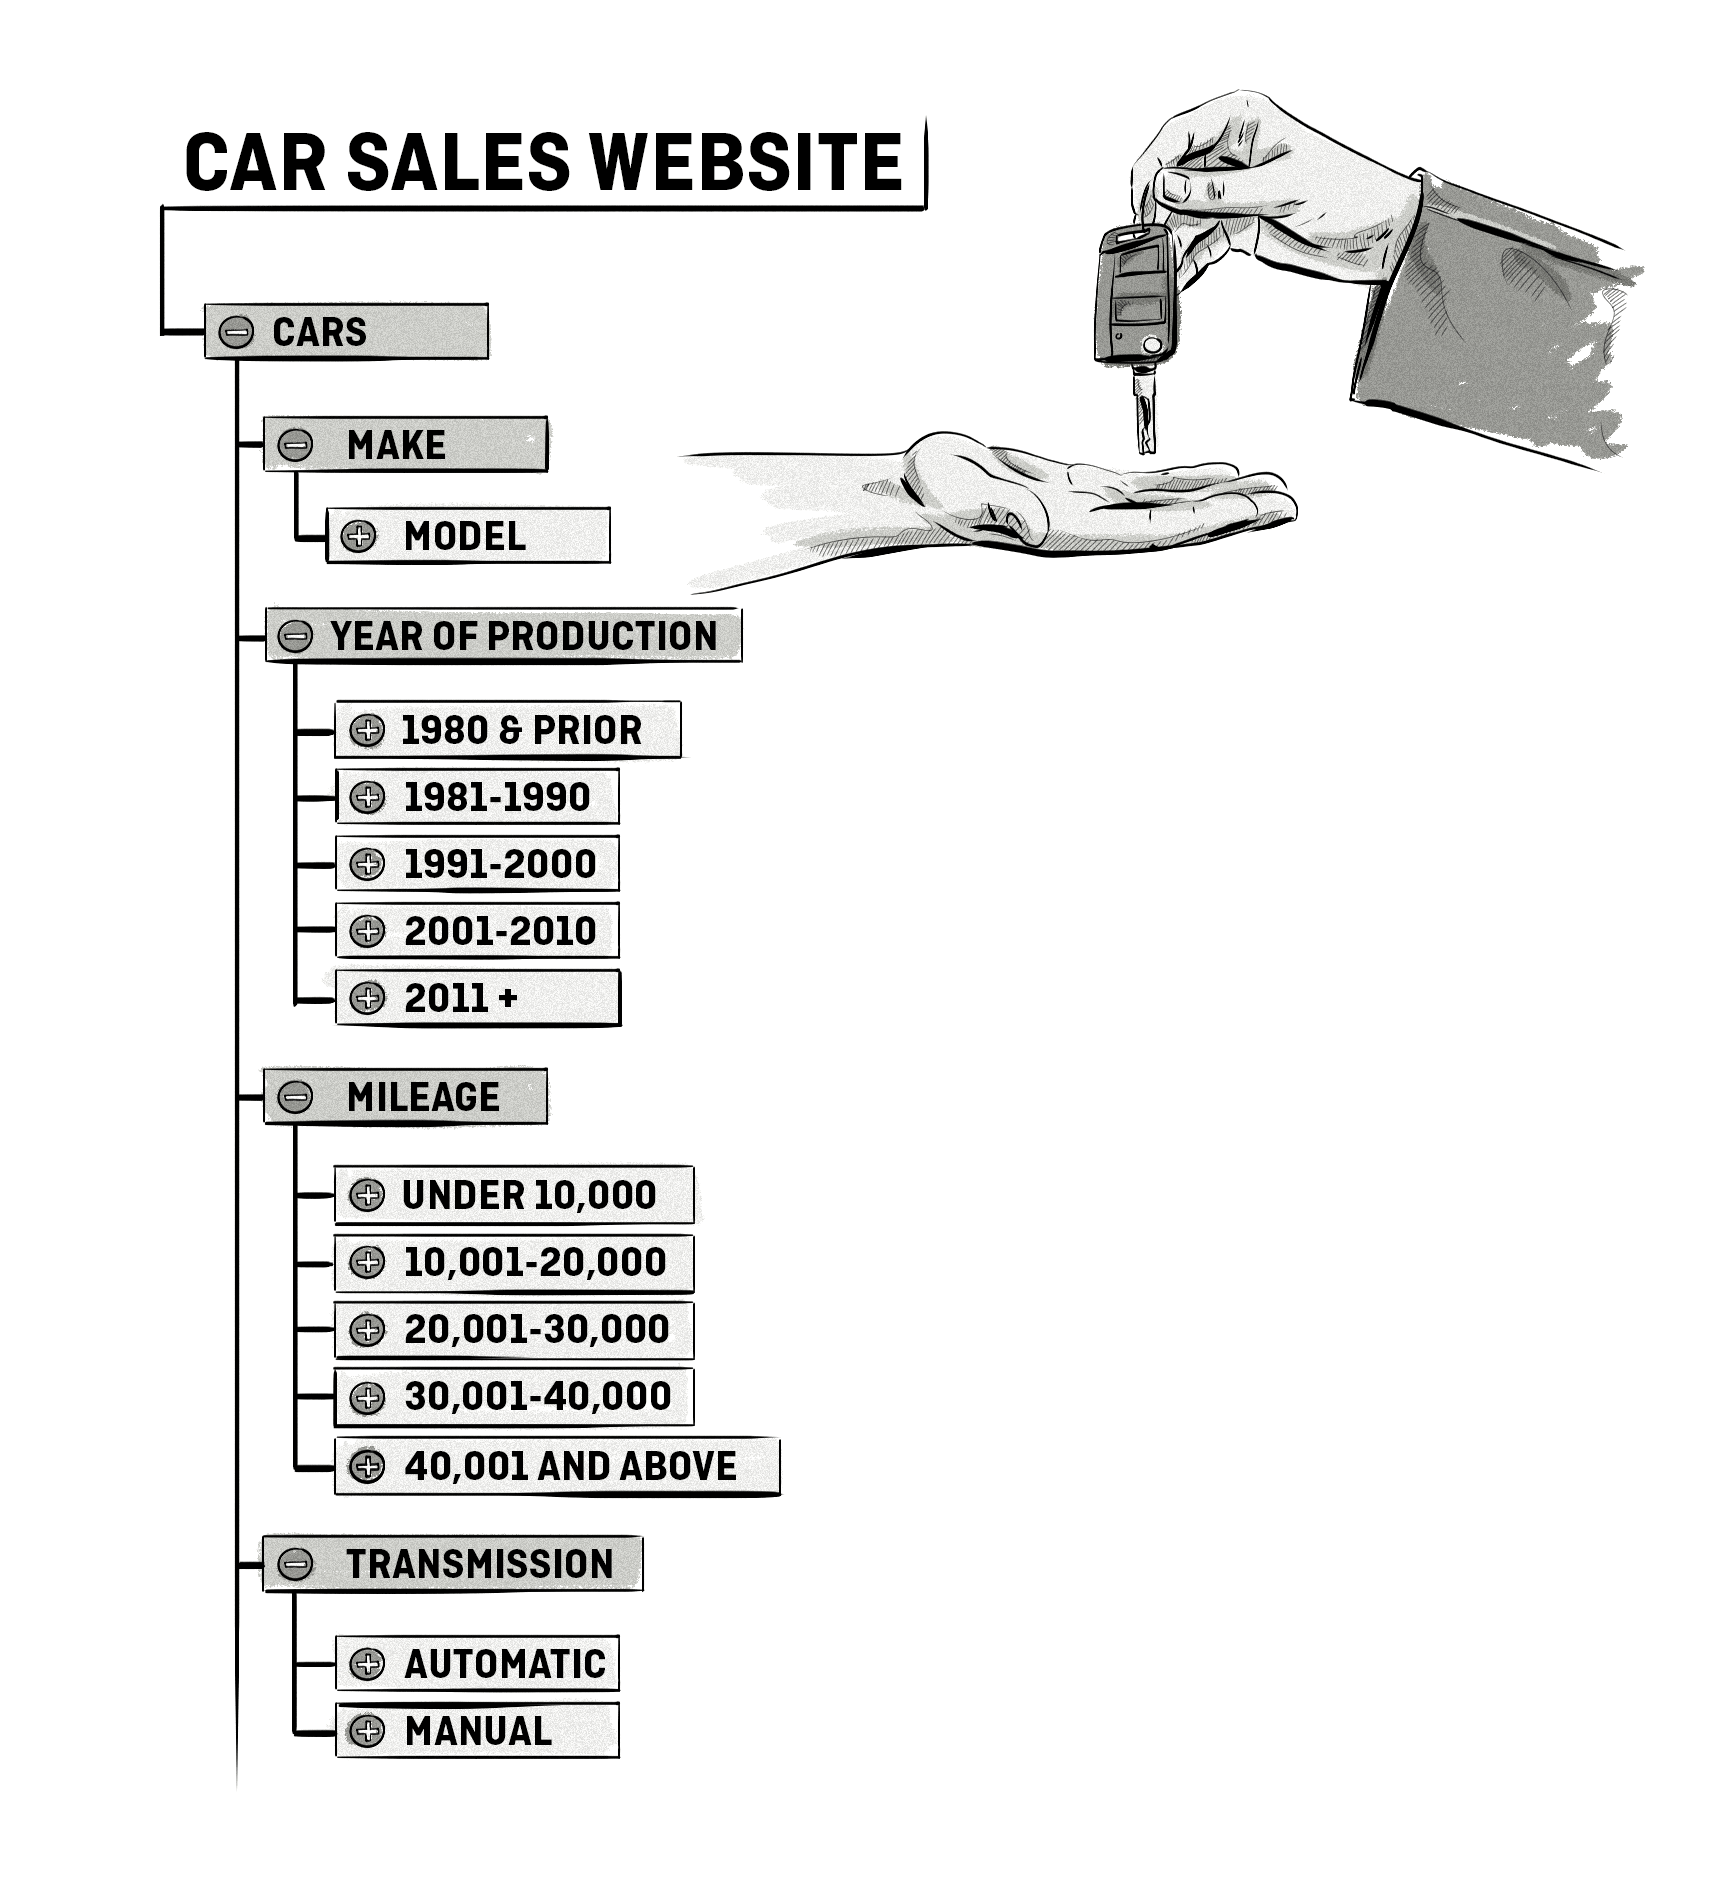 taxonomy for a car sales website